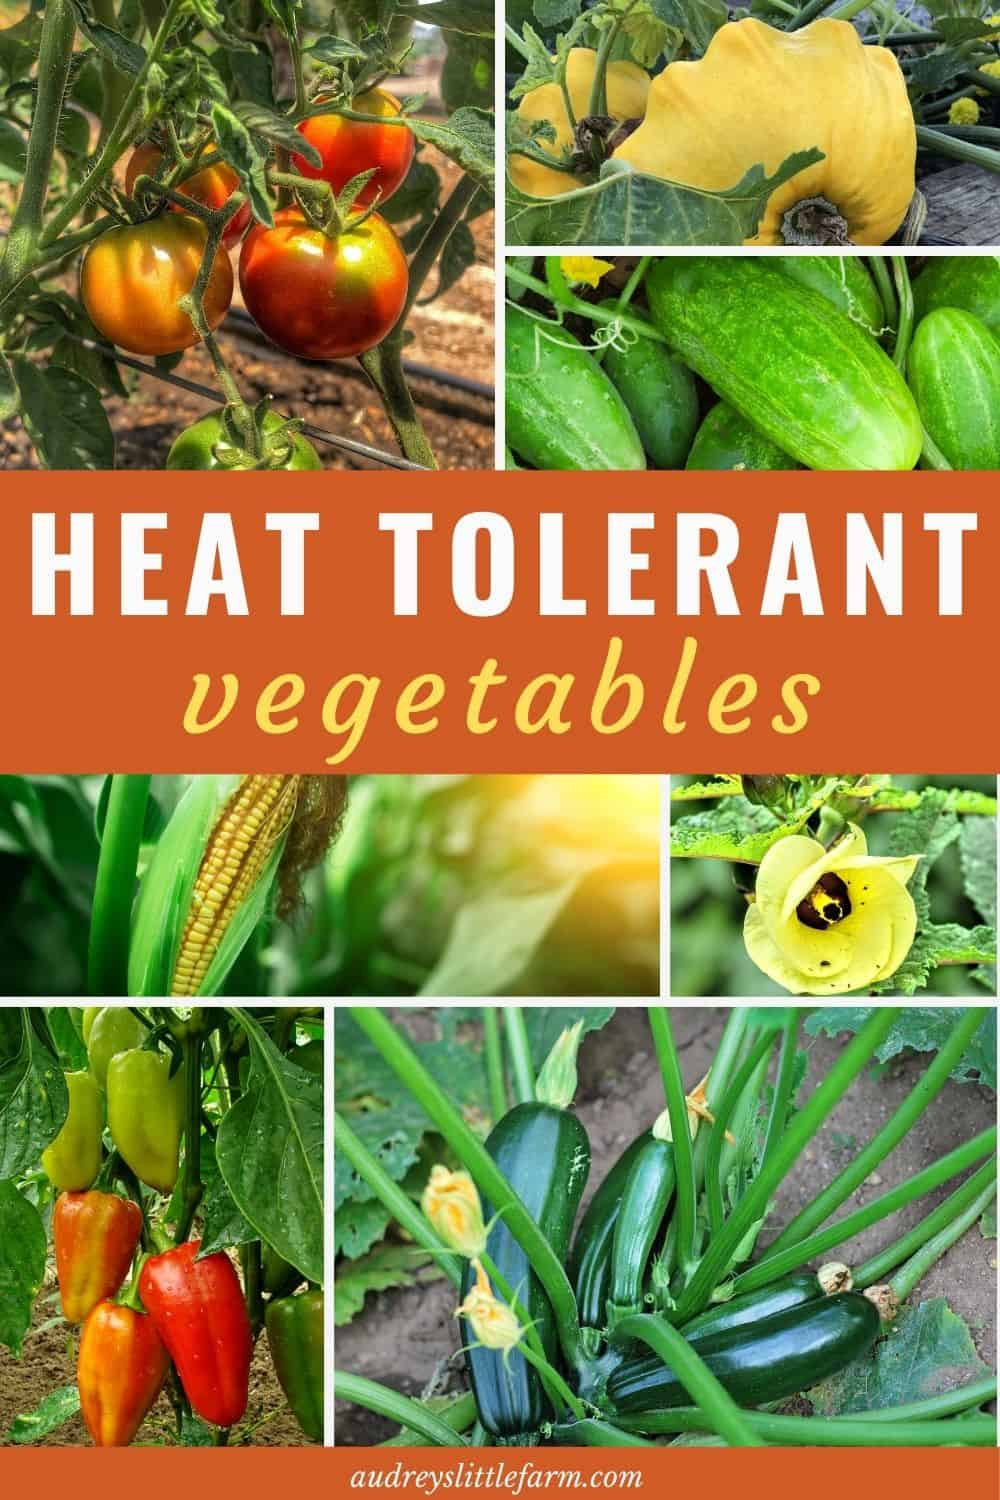 Heat Tolerant Vegetables Growing in the Garden